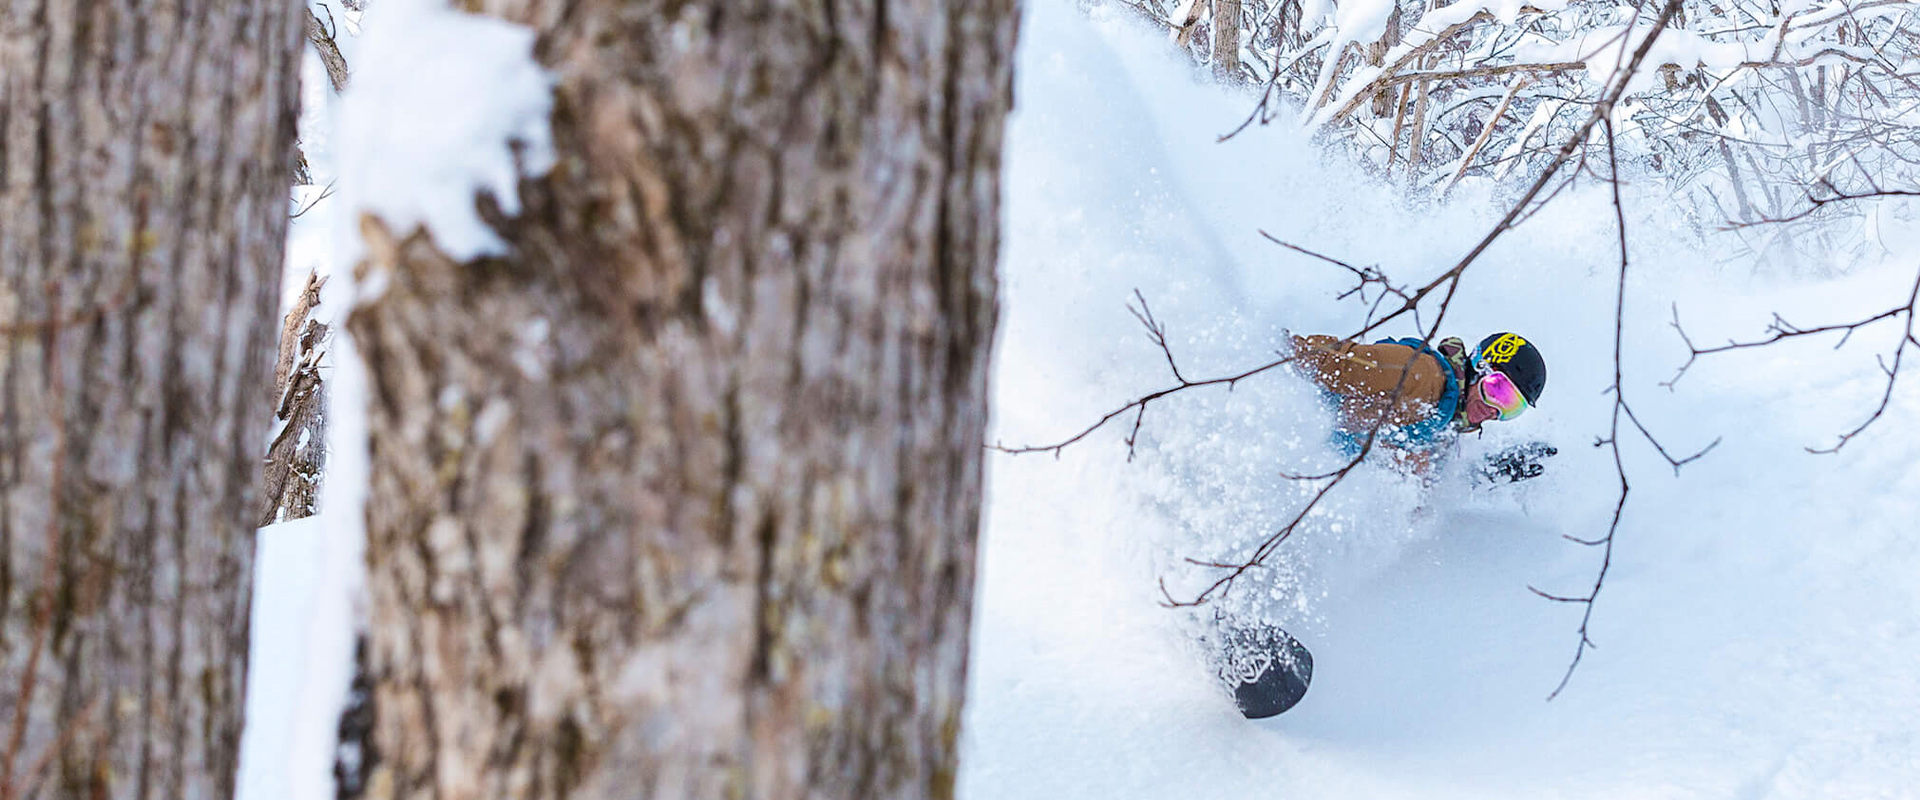 Big powder turn in Japanese forest during Powder Culture Tour with First Tours